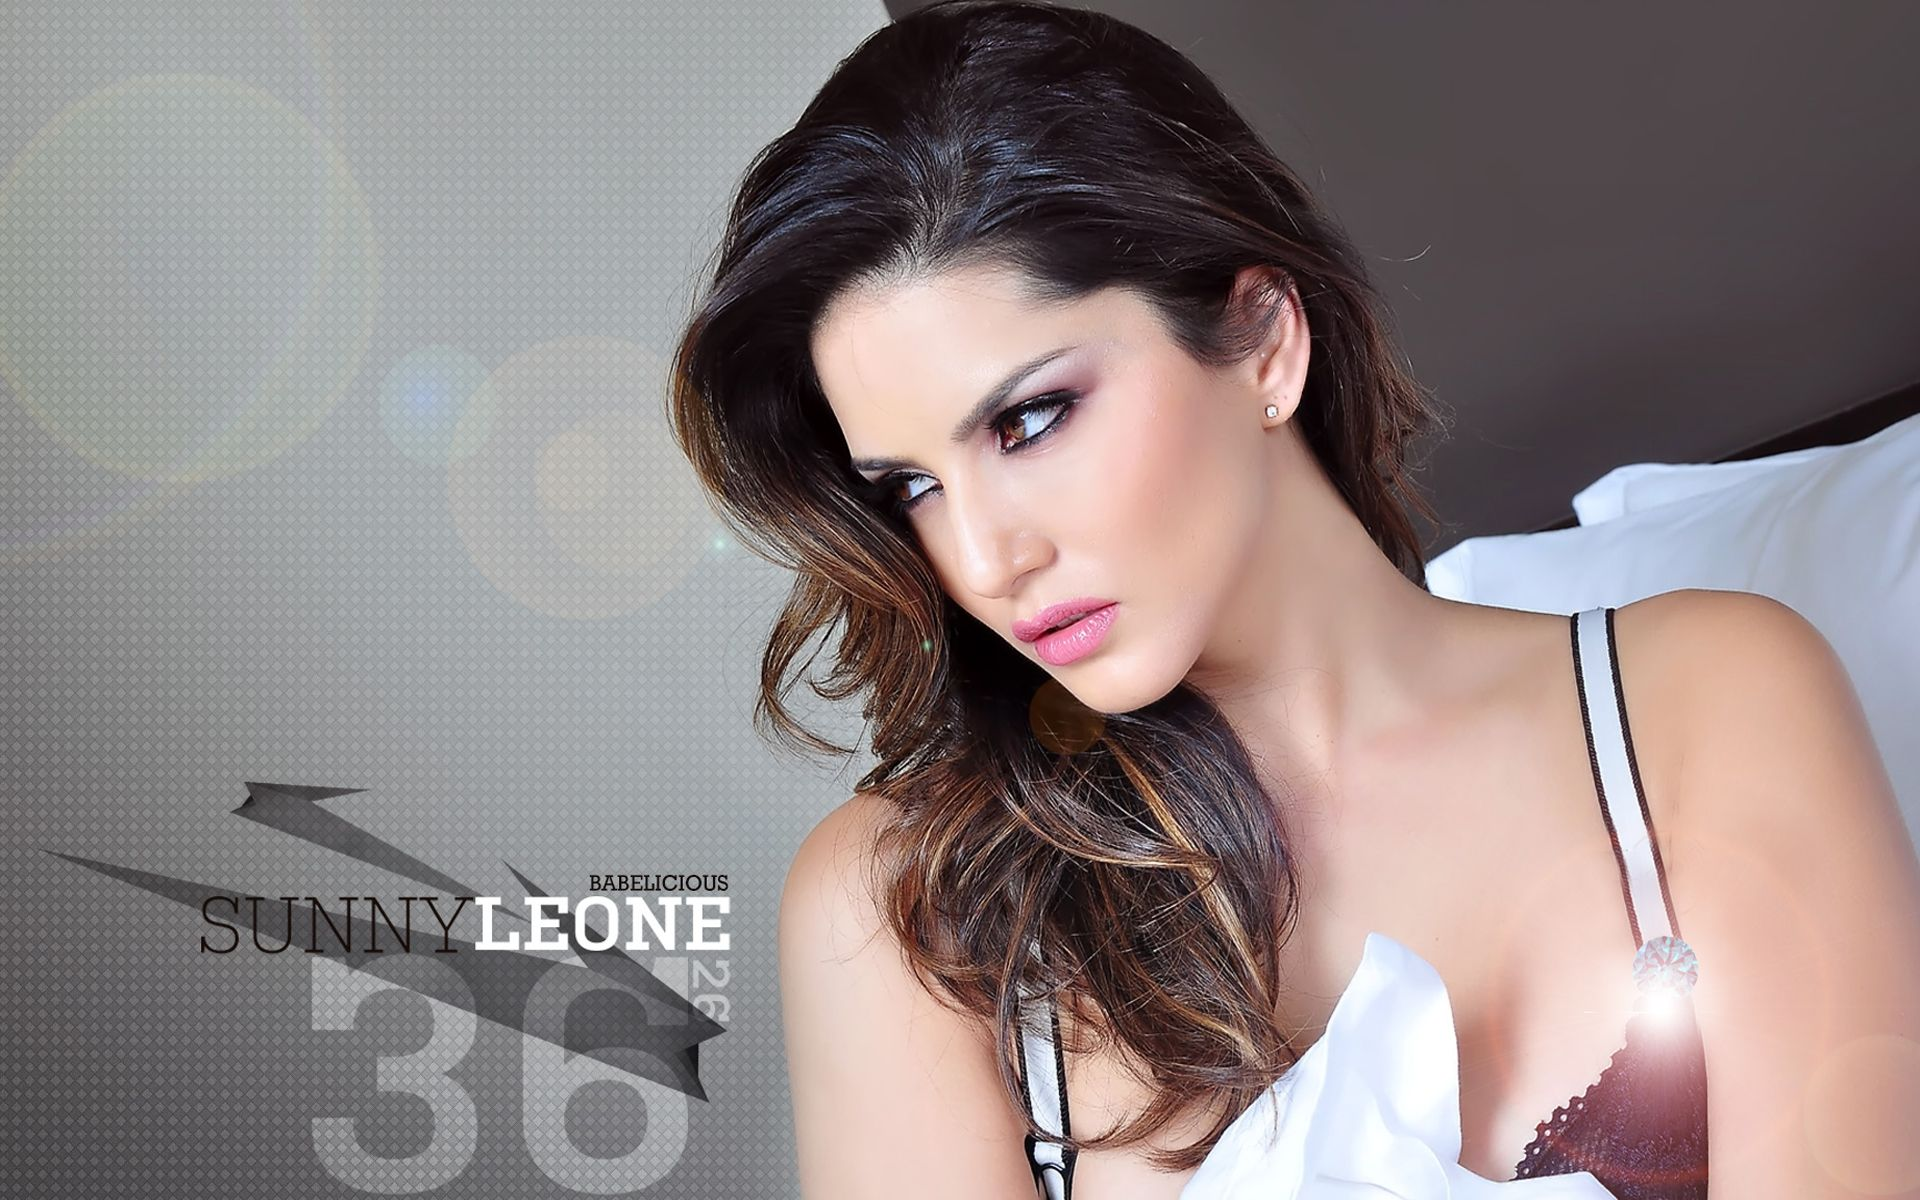 Sunny Leone Hd Wallpaper Free Download Sunny Leone Hd Hot Sexy Wallpapers Bollywood Actress Bold Beautiful High Definition Images Pictures Cute